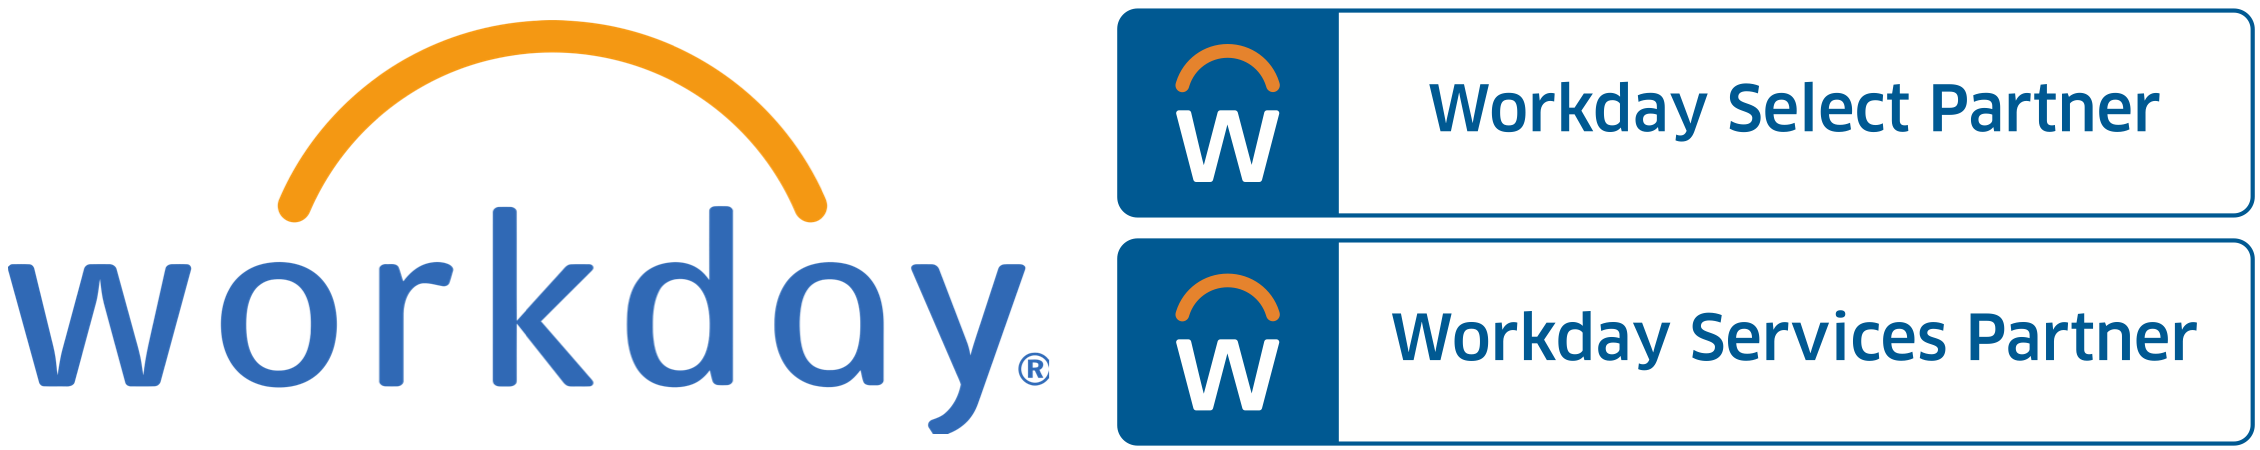 Workday logo and stacked parter logos Lg_2260x450 - Kainos